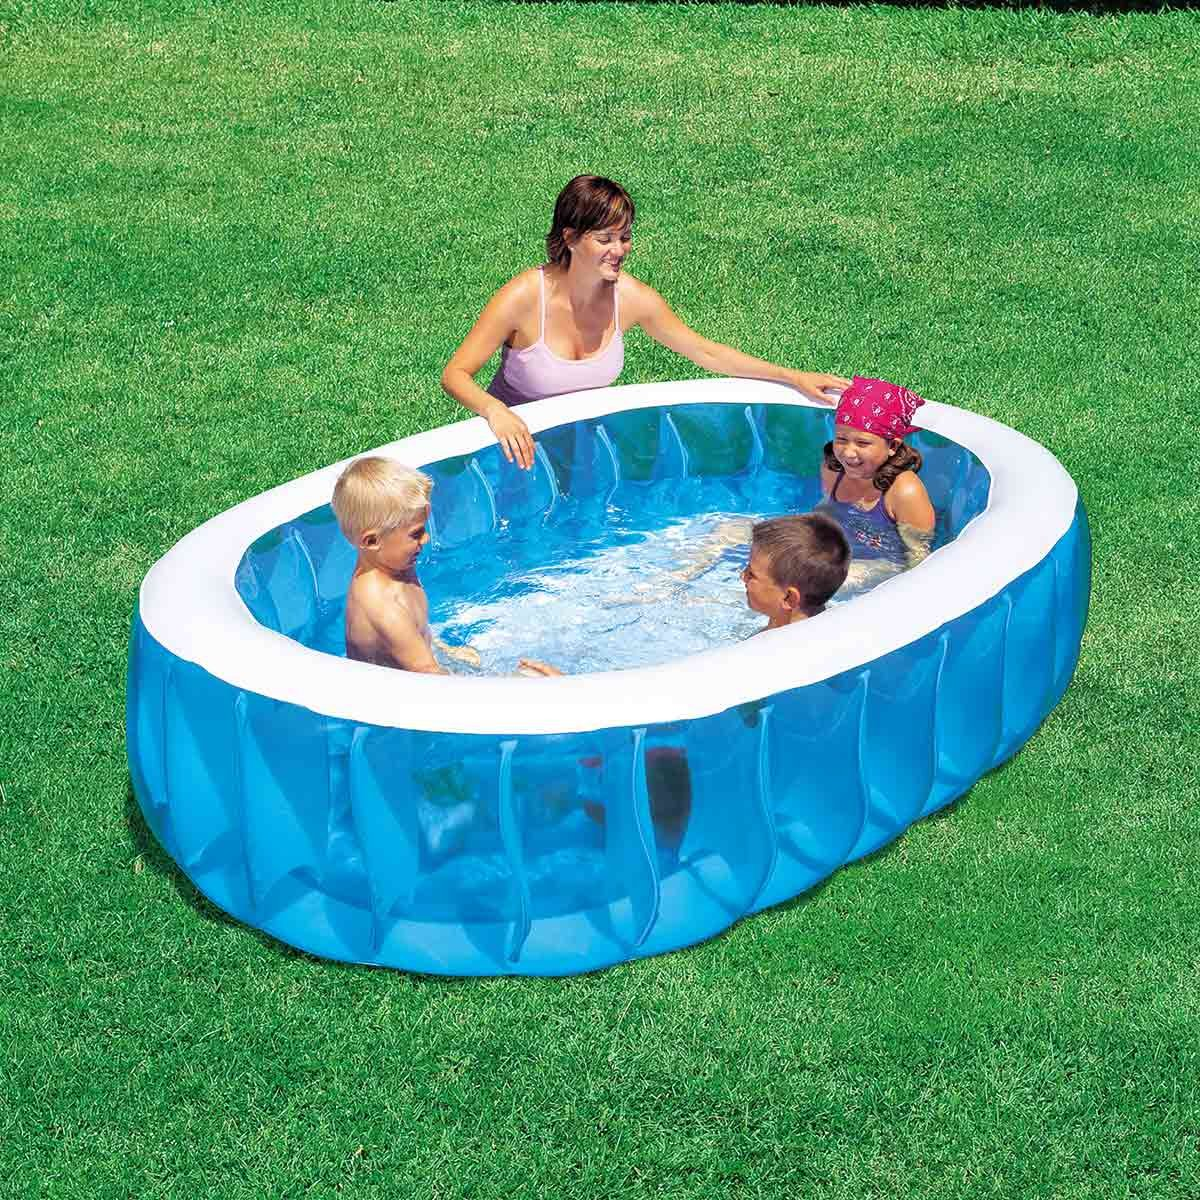 Piscina Hinchable Infantil Bestway Elliptic Pool: Amazon.es: Jardín